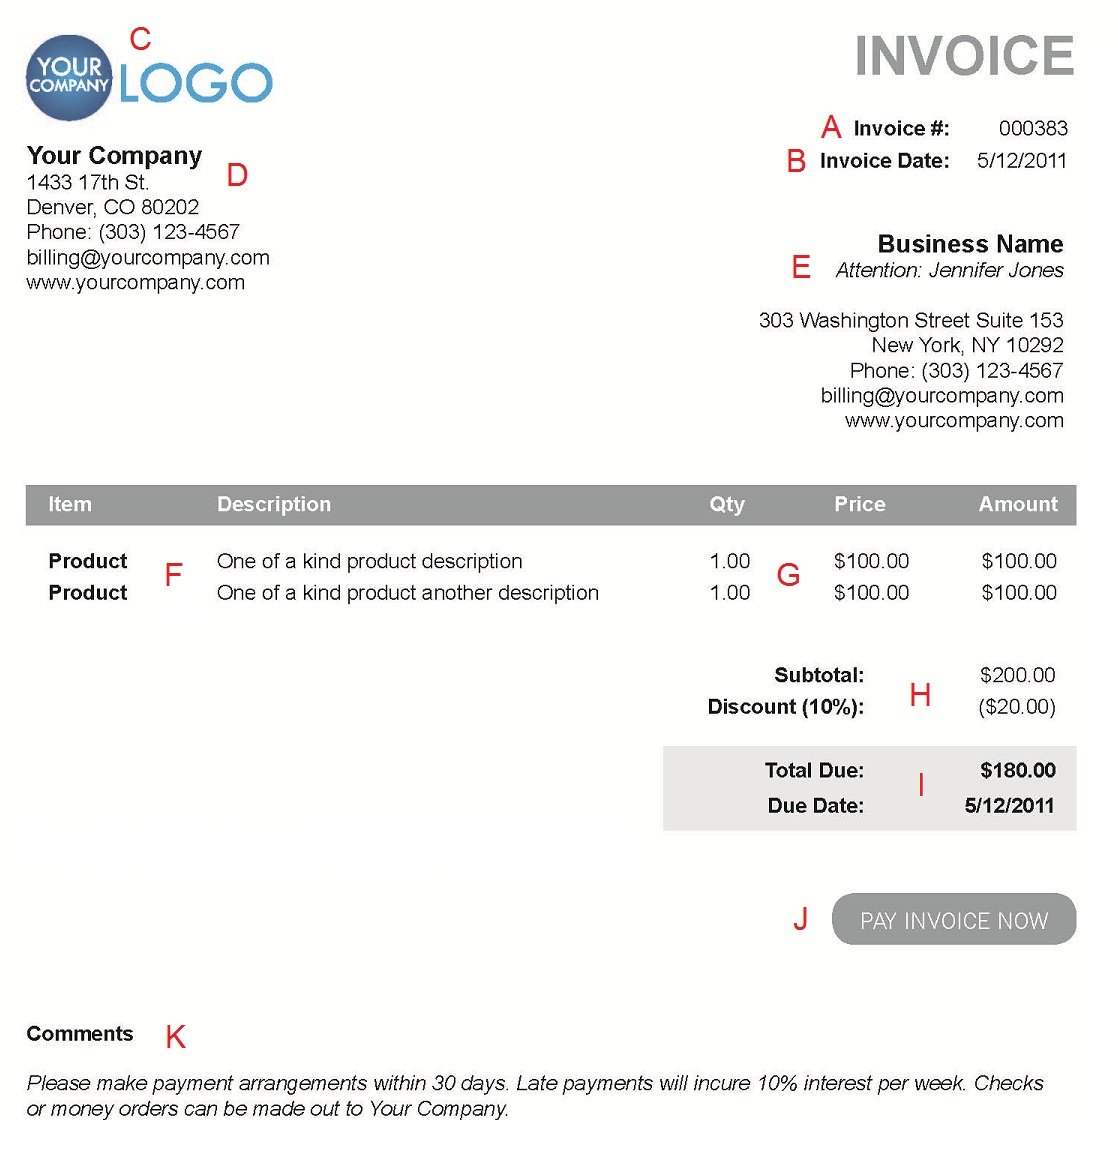 Patriotexpressus  Gorgeous The  Different Sections Of An Electronic Payment Invoice With Entrancing A  With Astonishing Quicken Invoice Software Also Parts Invoice In Addition Commercial Invoice International Shipping And What Is A Car Invoice As Well As Catering Invoice Template Excel Additionally Create Custom Invoices From Paysimplecom With Patriotexpressus  Entrancing The  Different Sections Of An Electronic Payment Invoice With Astonishing A  And Gorgeous Quicken Invoice Software Also Parts Invoice In Addition Commercial Invoice International Shipping From Paysimplecom